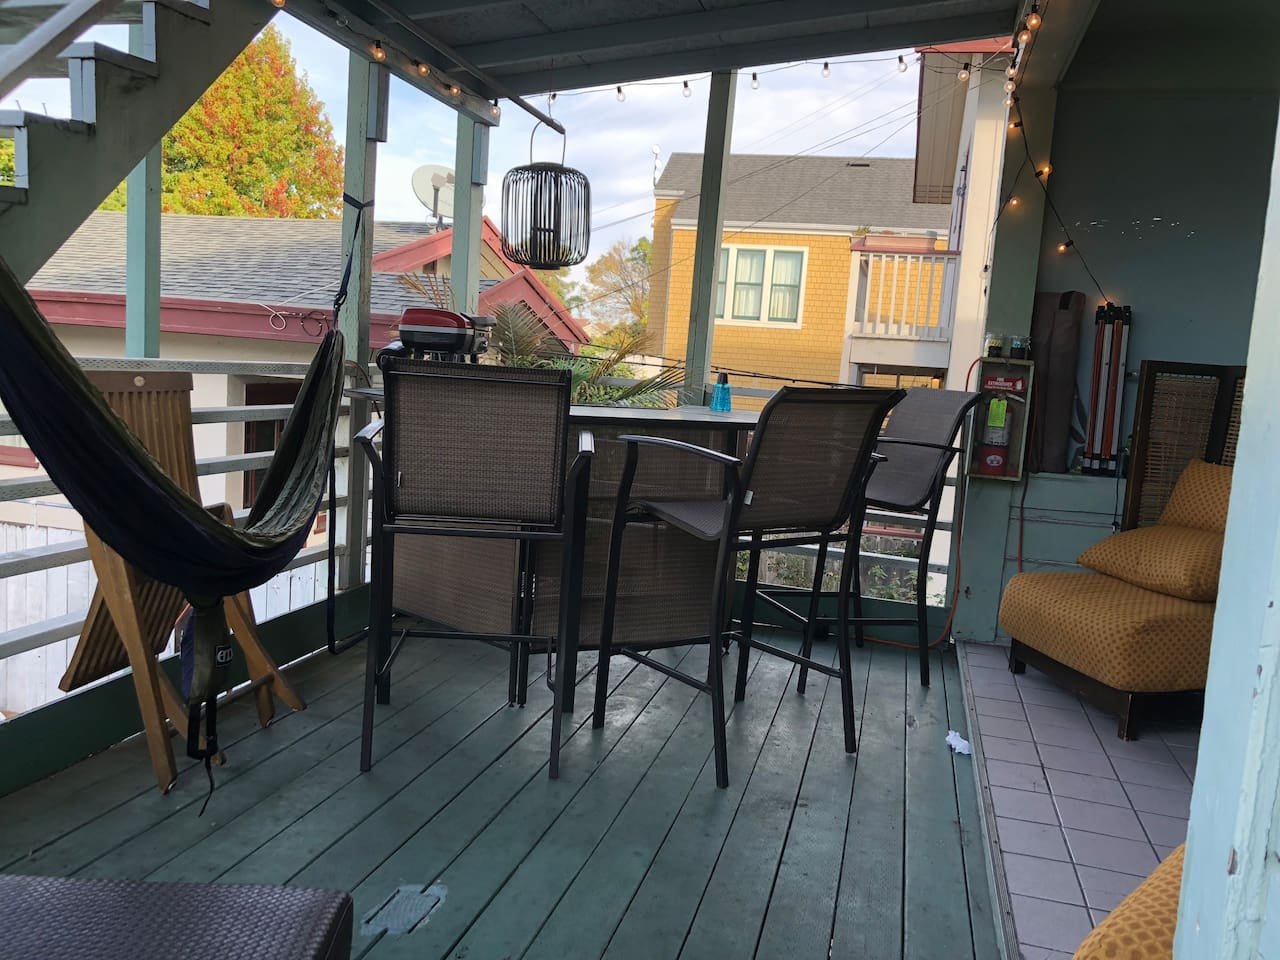 Private Back deck with comfortable chairs, bar area, hammock, cool lighting, and small grill